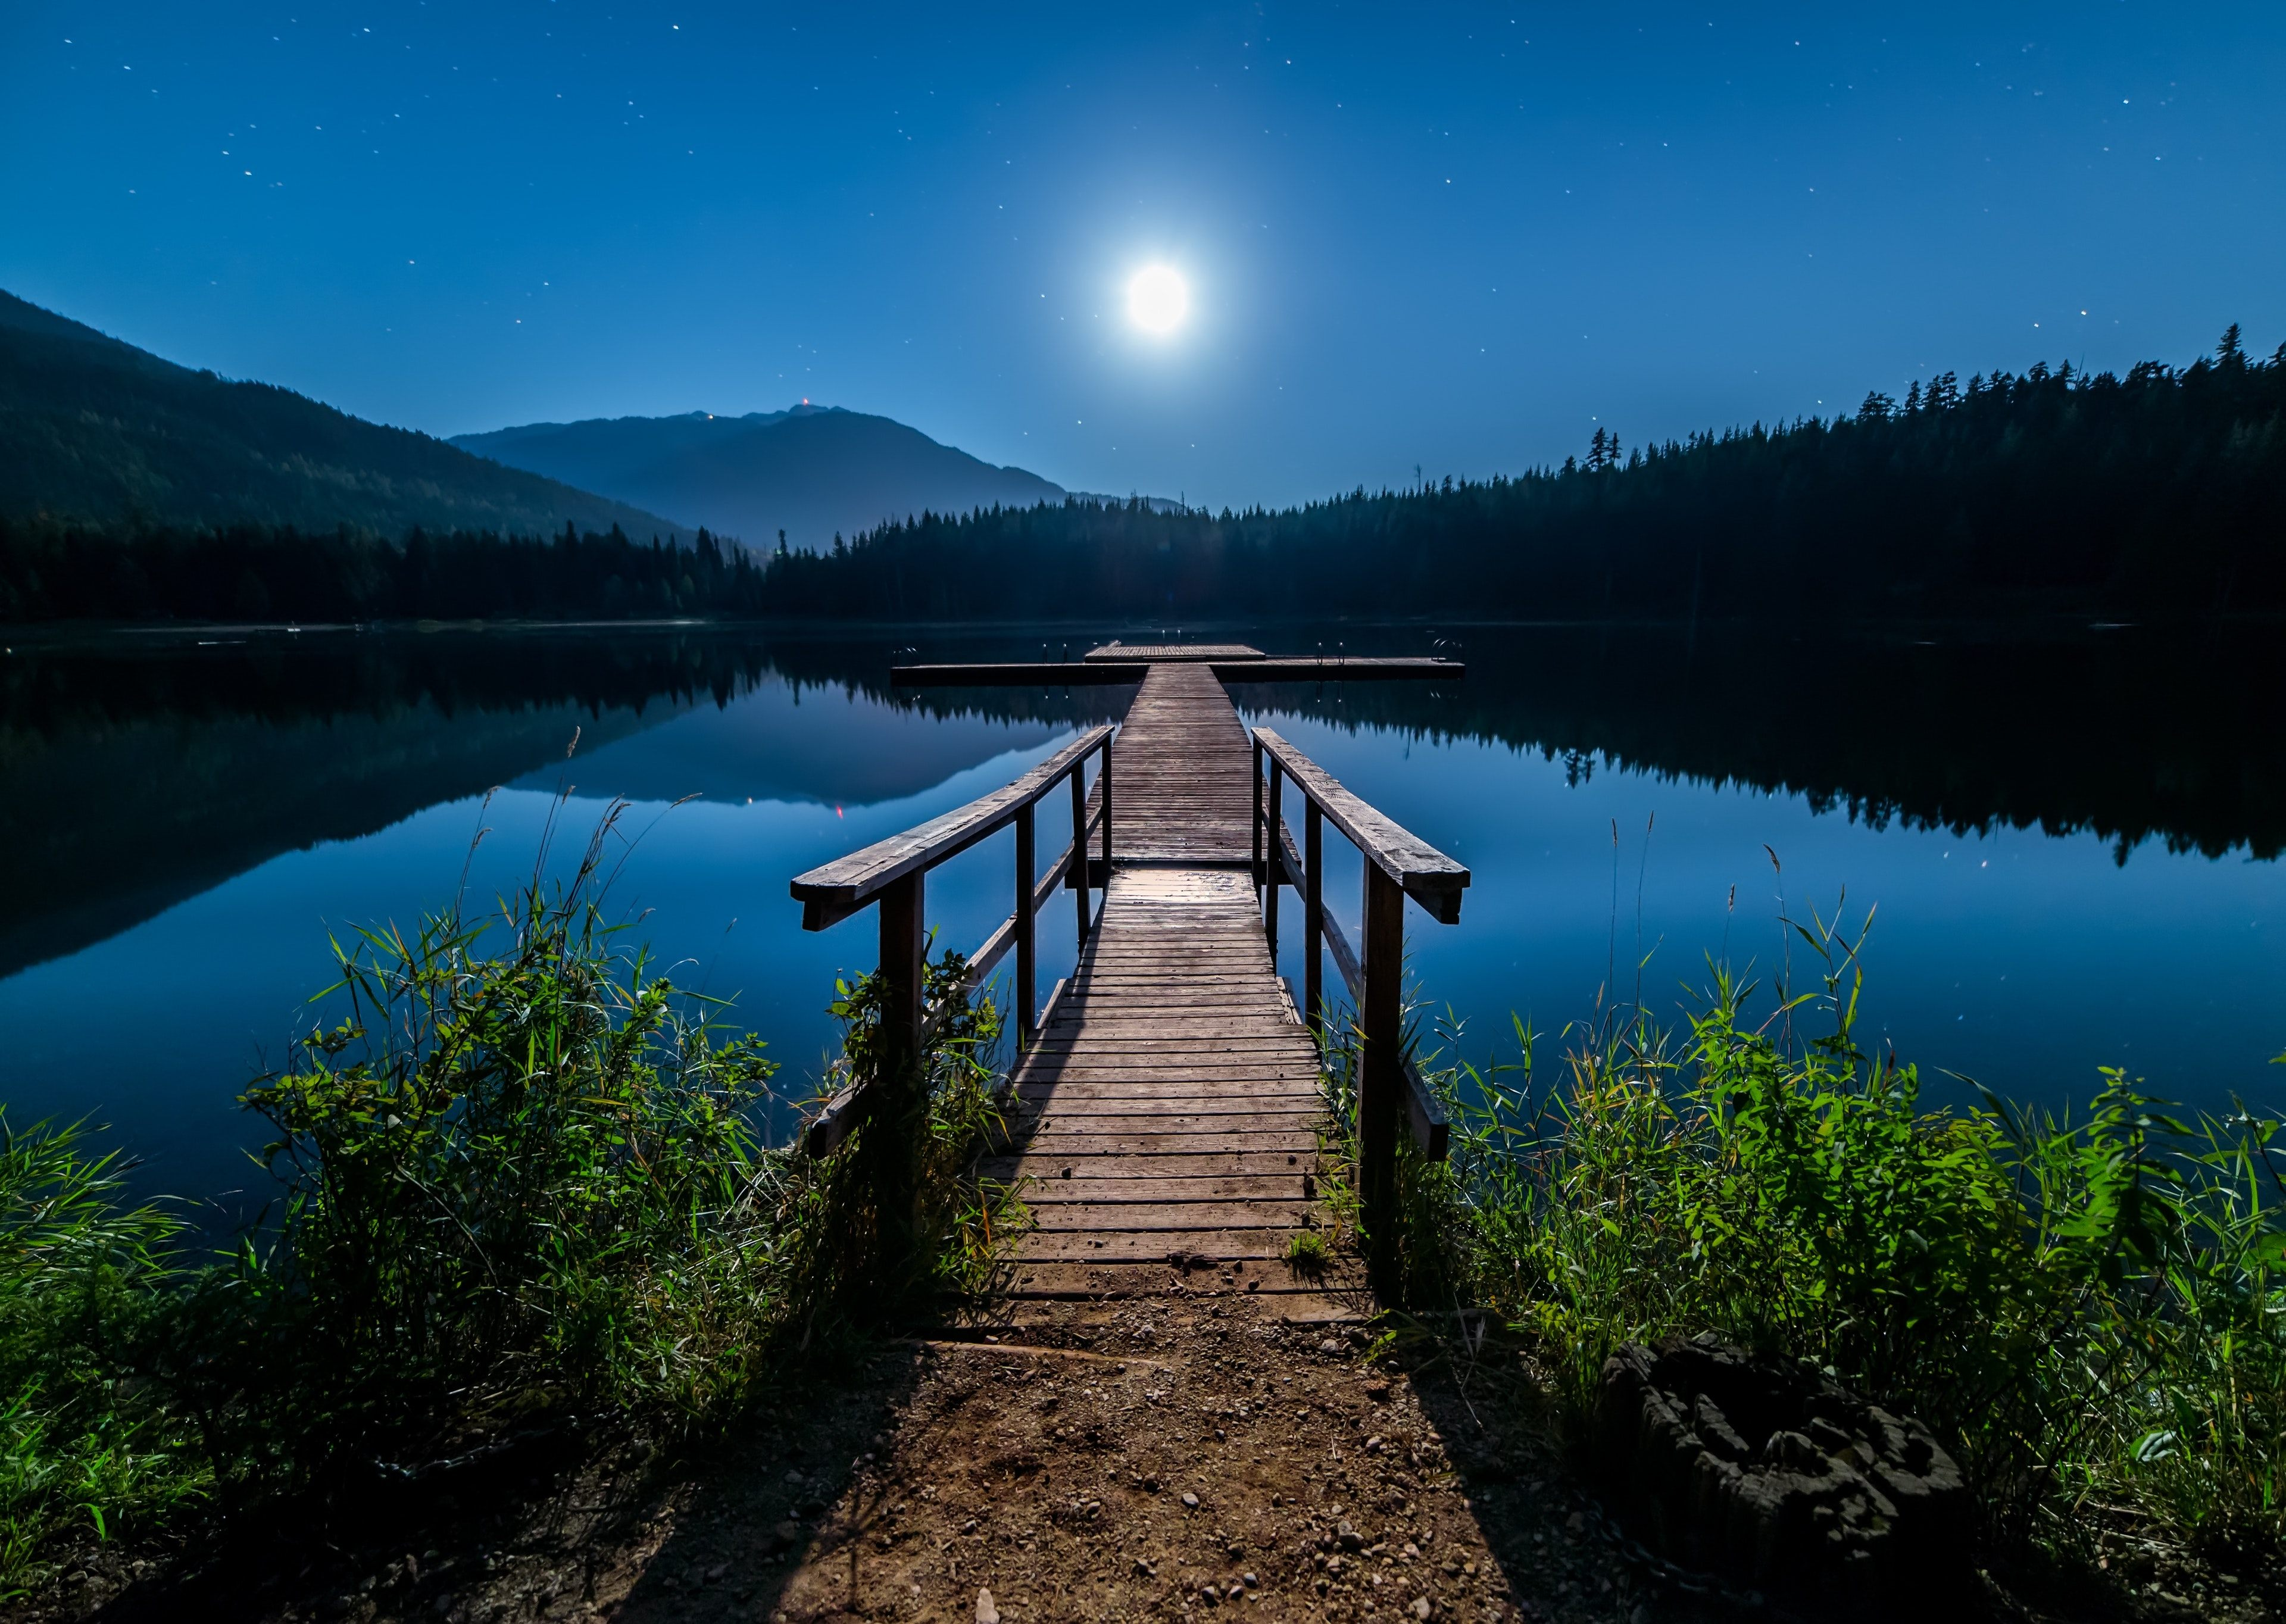 Awesome Lonely Night With Moon 4k Wallpaper Nature Beautiful 3840x2728 Wallpaper Teahub Io